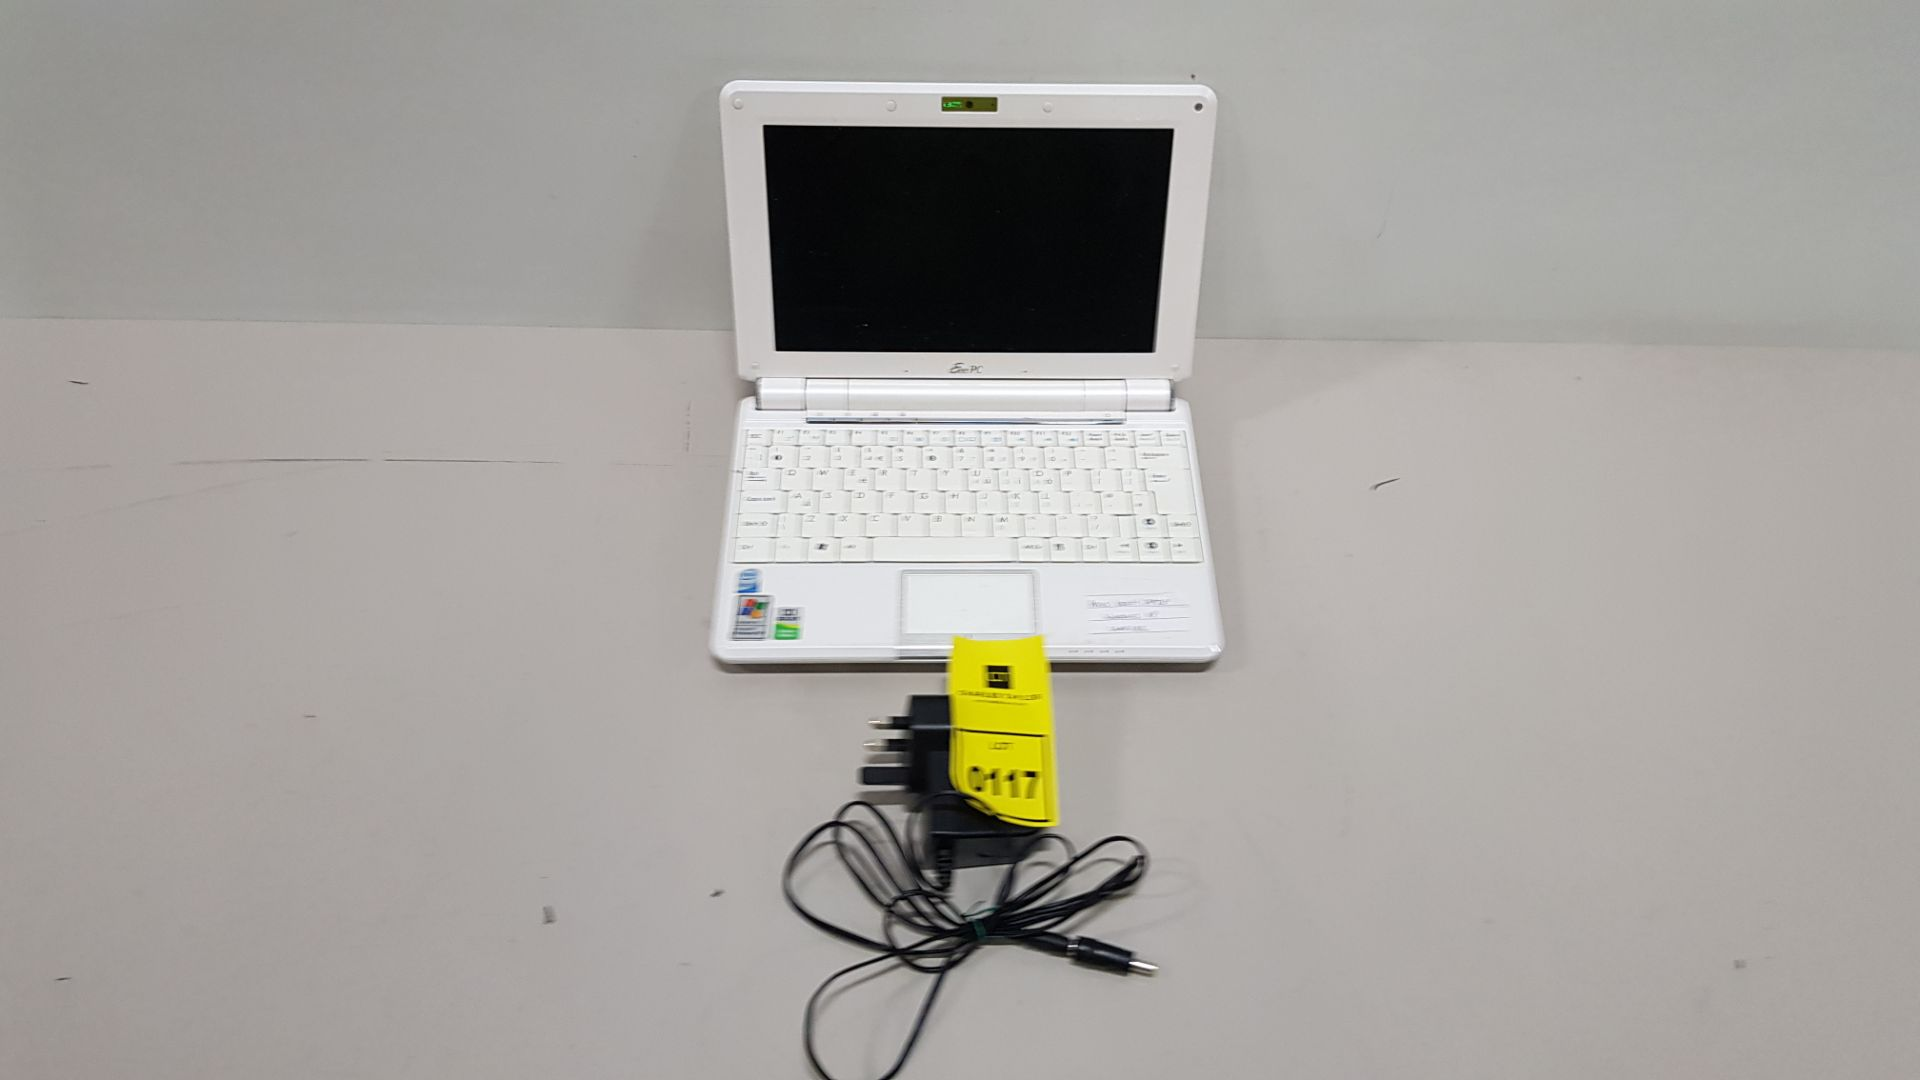 ASUS 1000H LAPTOP WINDOWS XP - WITH CHARGER